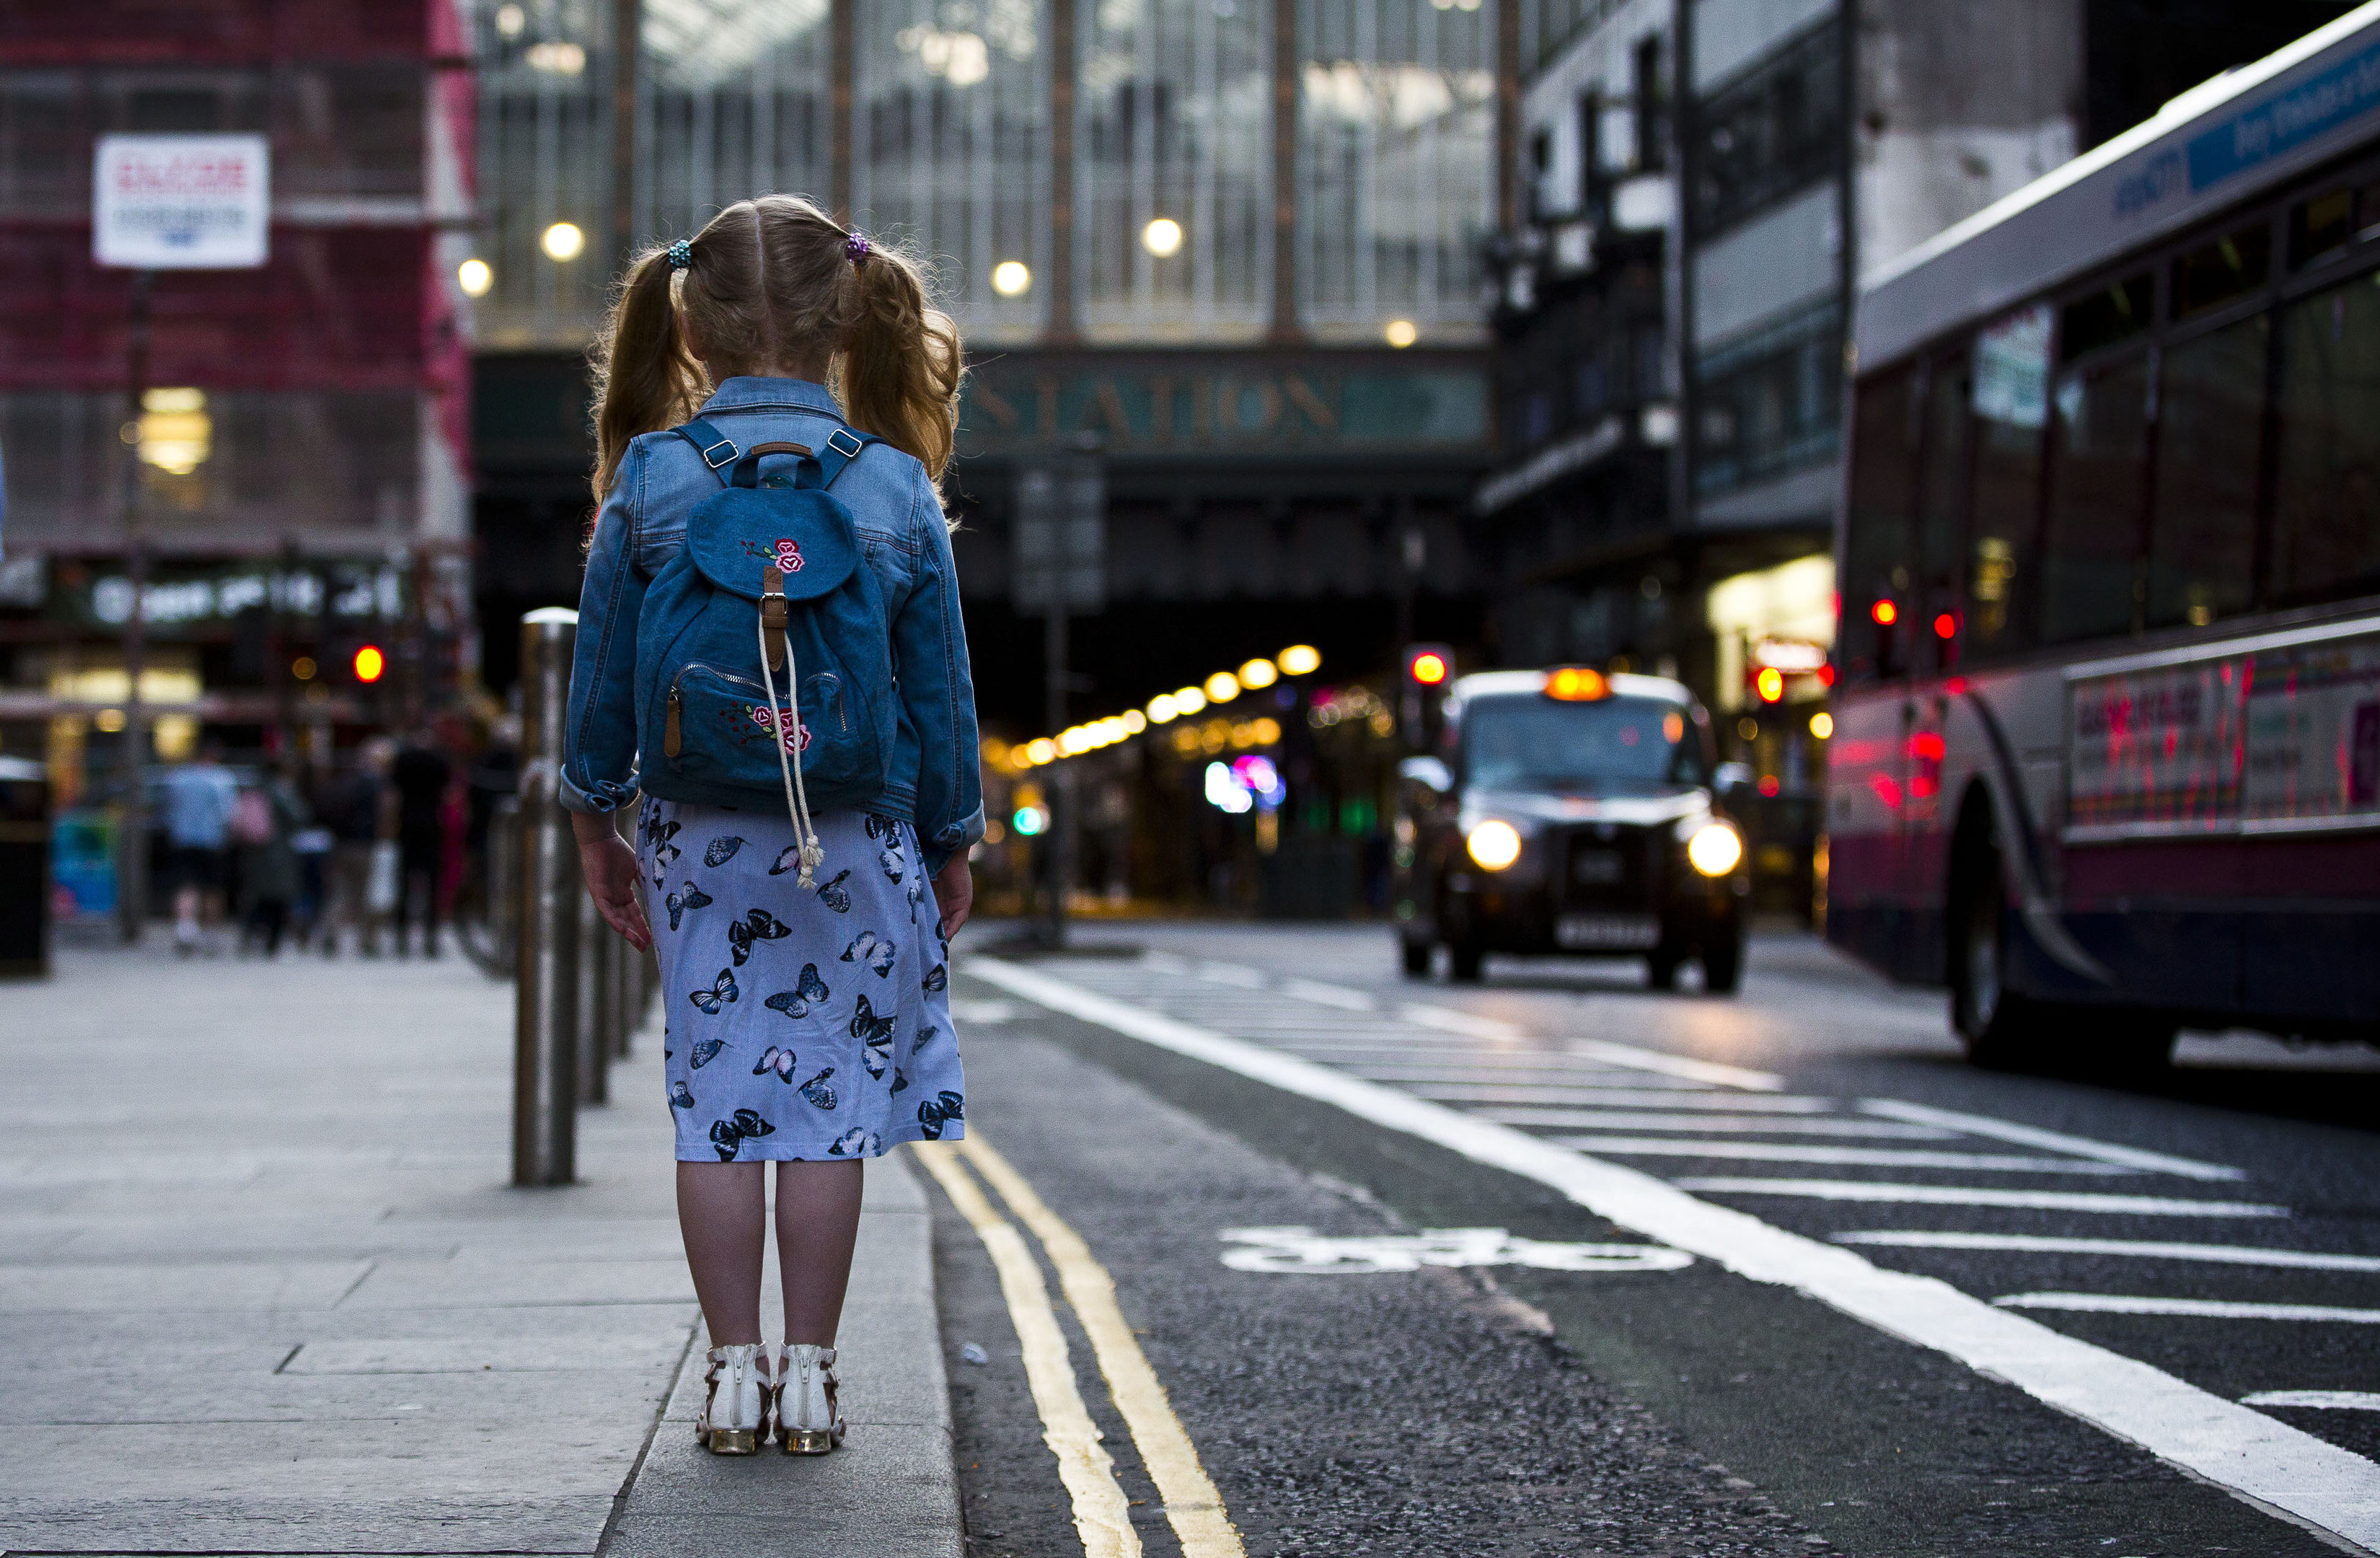 A little girl in Glasgow,  near an area where, as we told last week, some teenagers are exploited after blighted childhoods (Pic: Jamie Williamson)